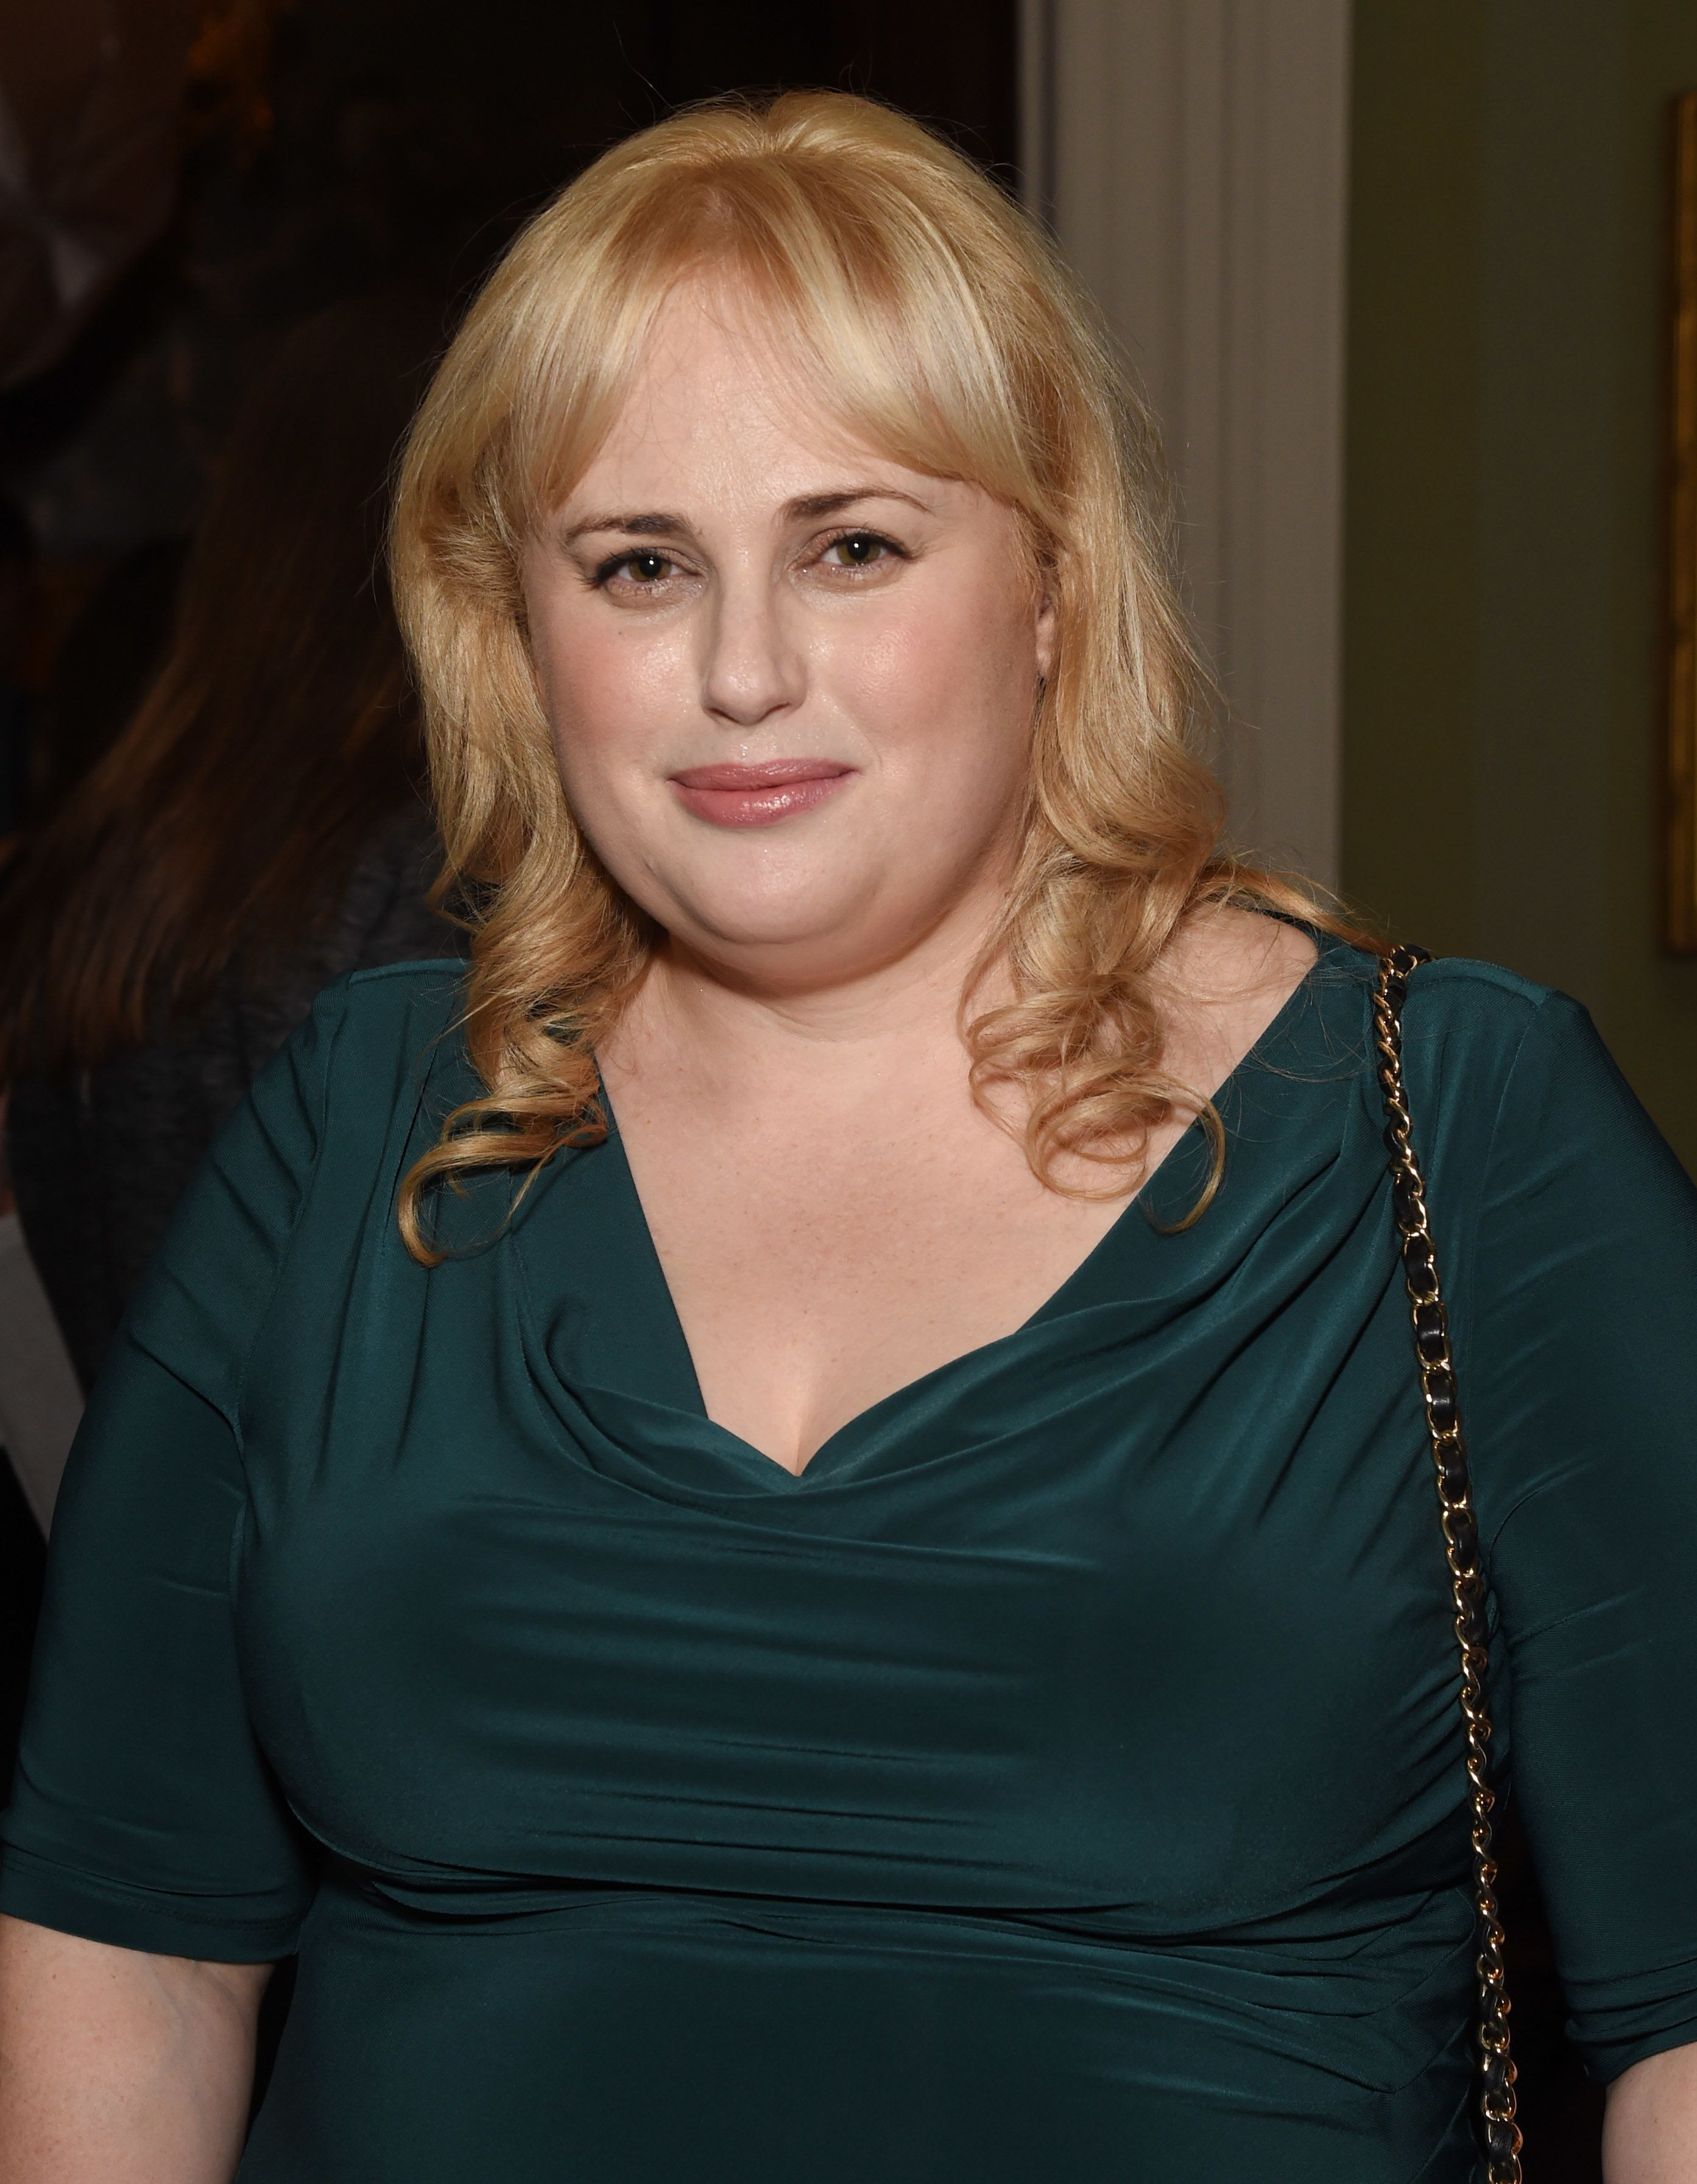 Rebel Wilson at the Academy of Motion Picture Arts and Sciences in October 2017.